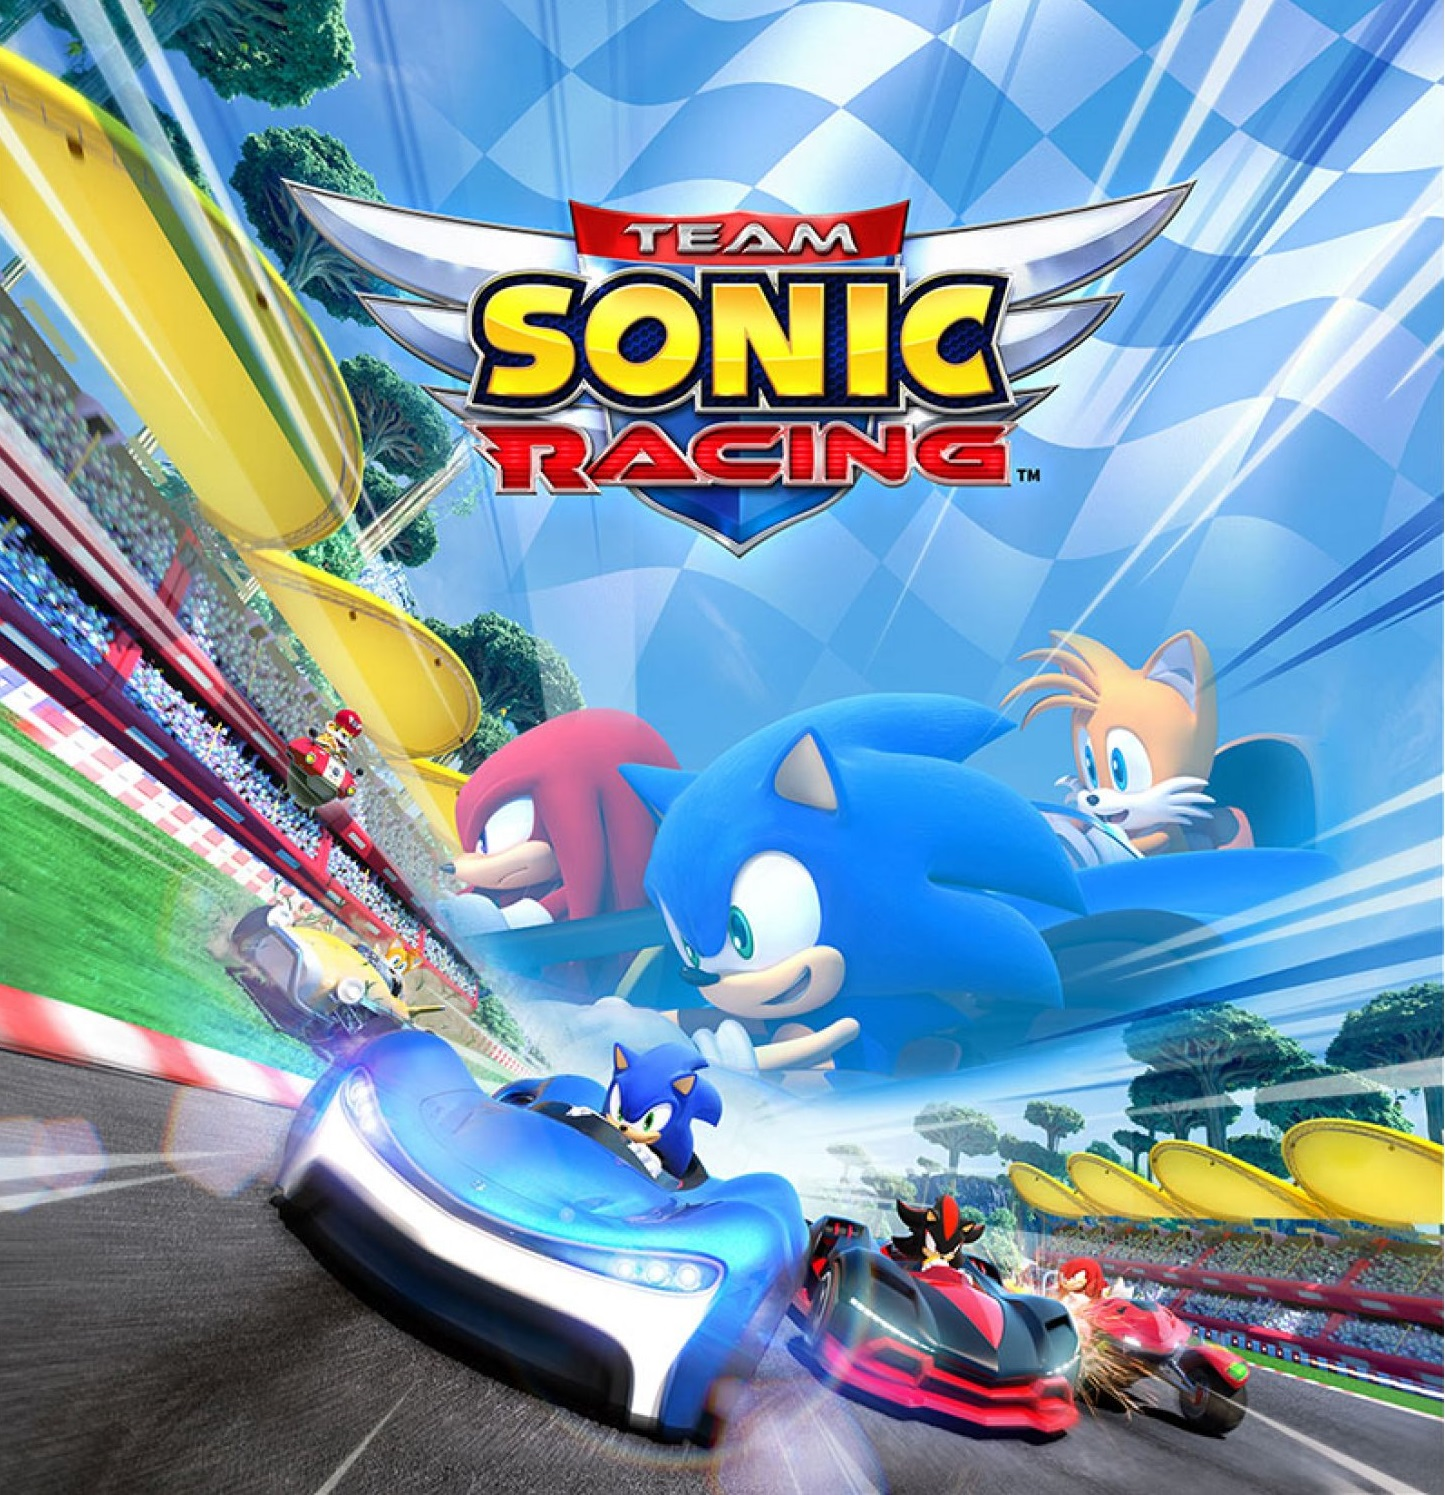 team-sonic-racing-dx-pack-585249.11